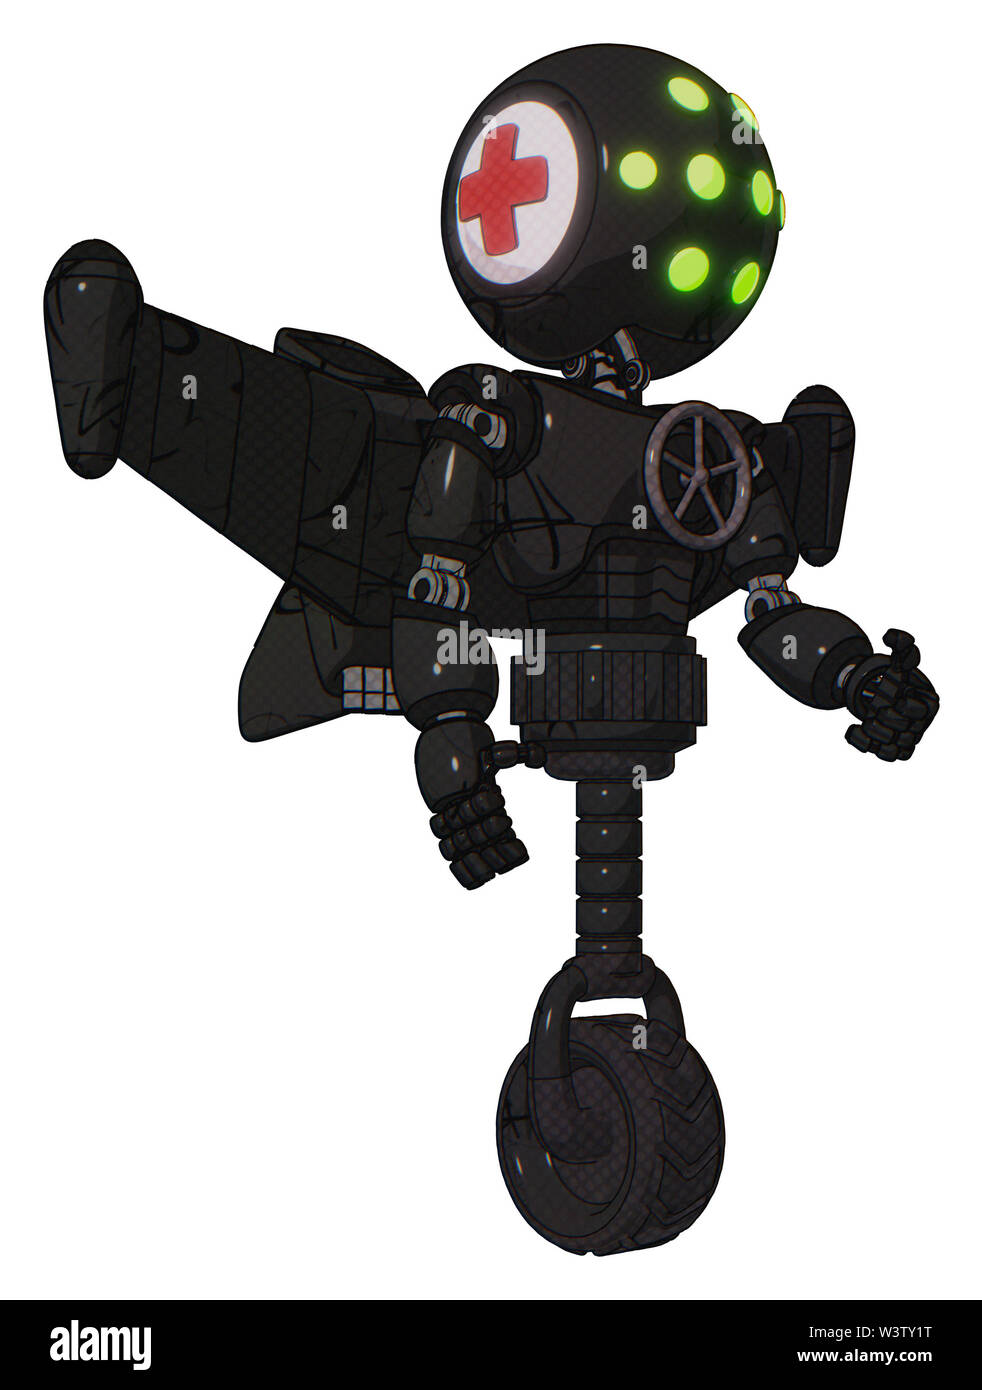 Android containing elements: round head, green eyes array, first aid emblem, light chest exoshielding, chest valve crank, stellar jet wing rocket pack - Stock Image